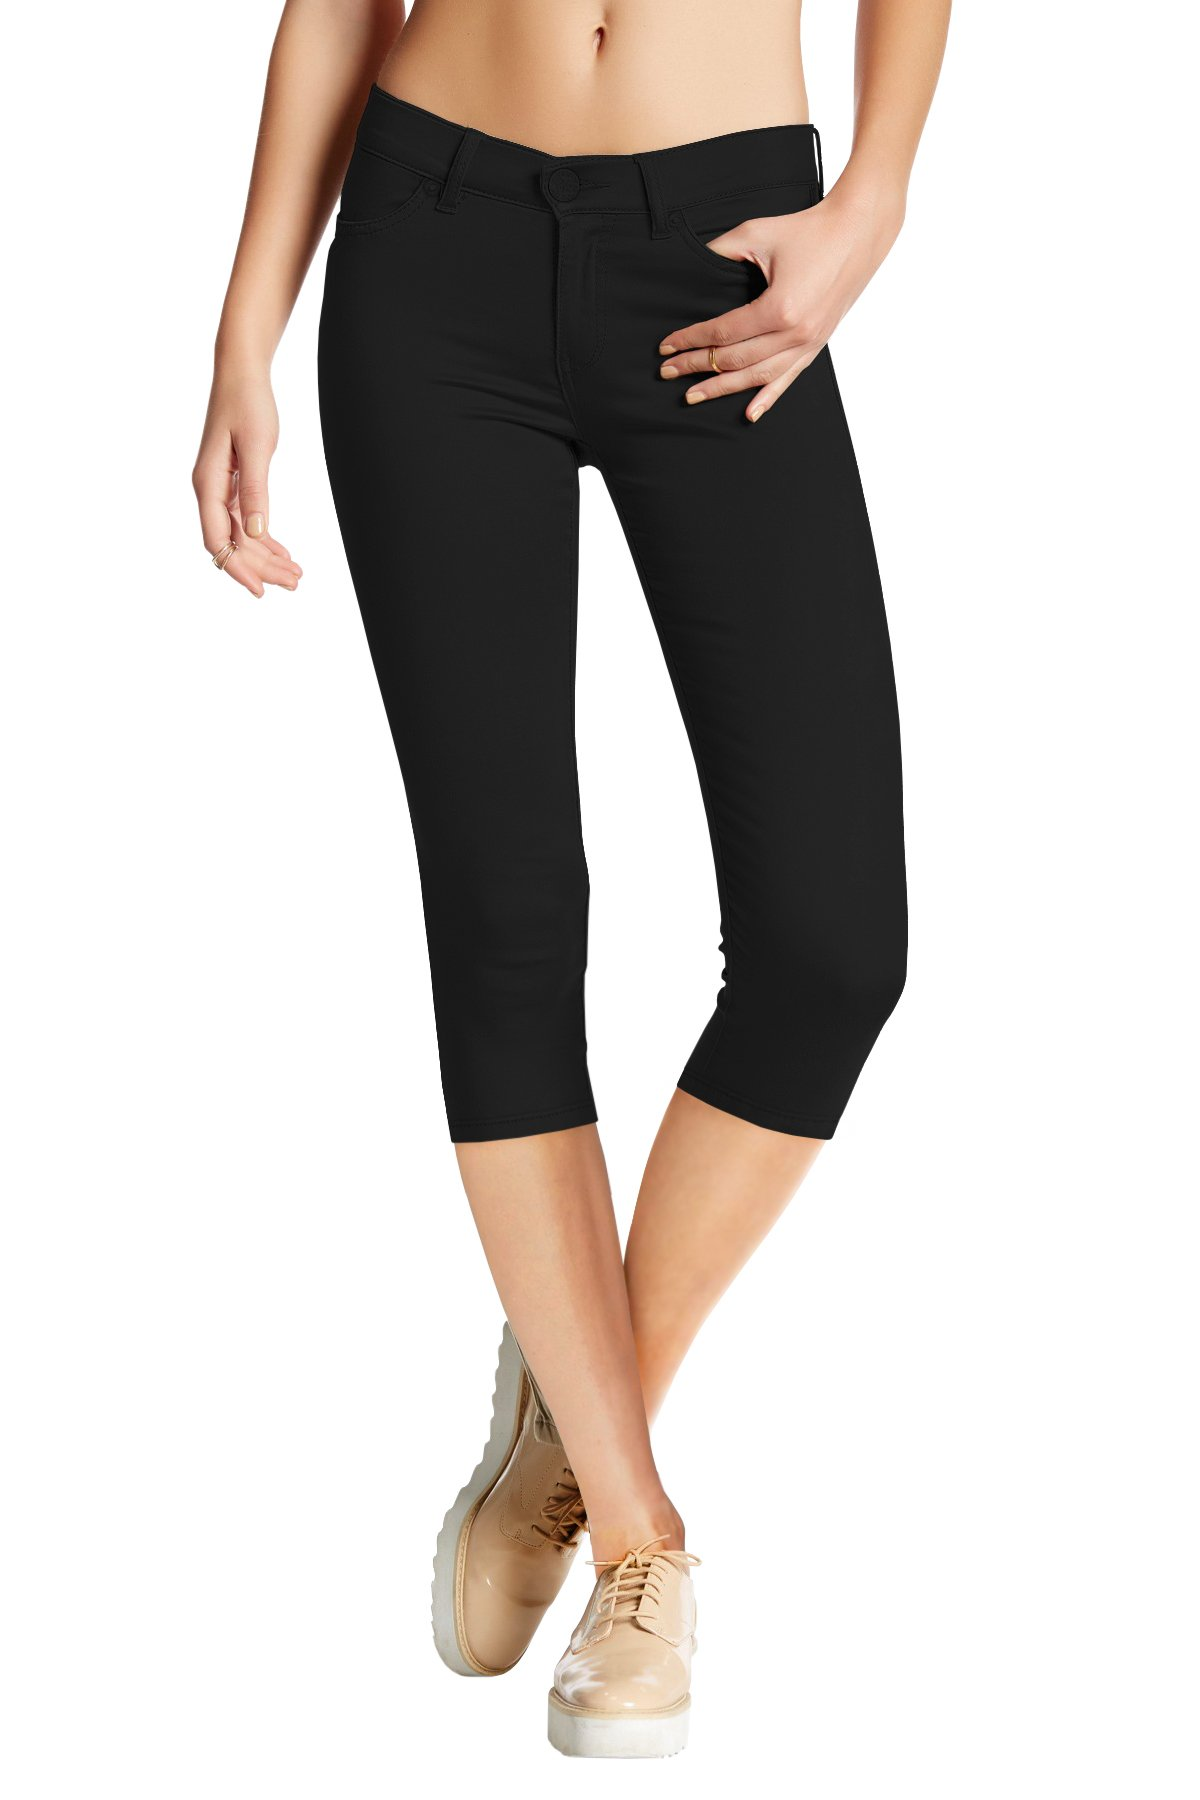 HyBrid & Company Women's Hyper Stretch Denim Capri Jeans Q44876 Black Medium by HyBrid & Company (Image #1)